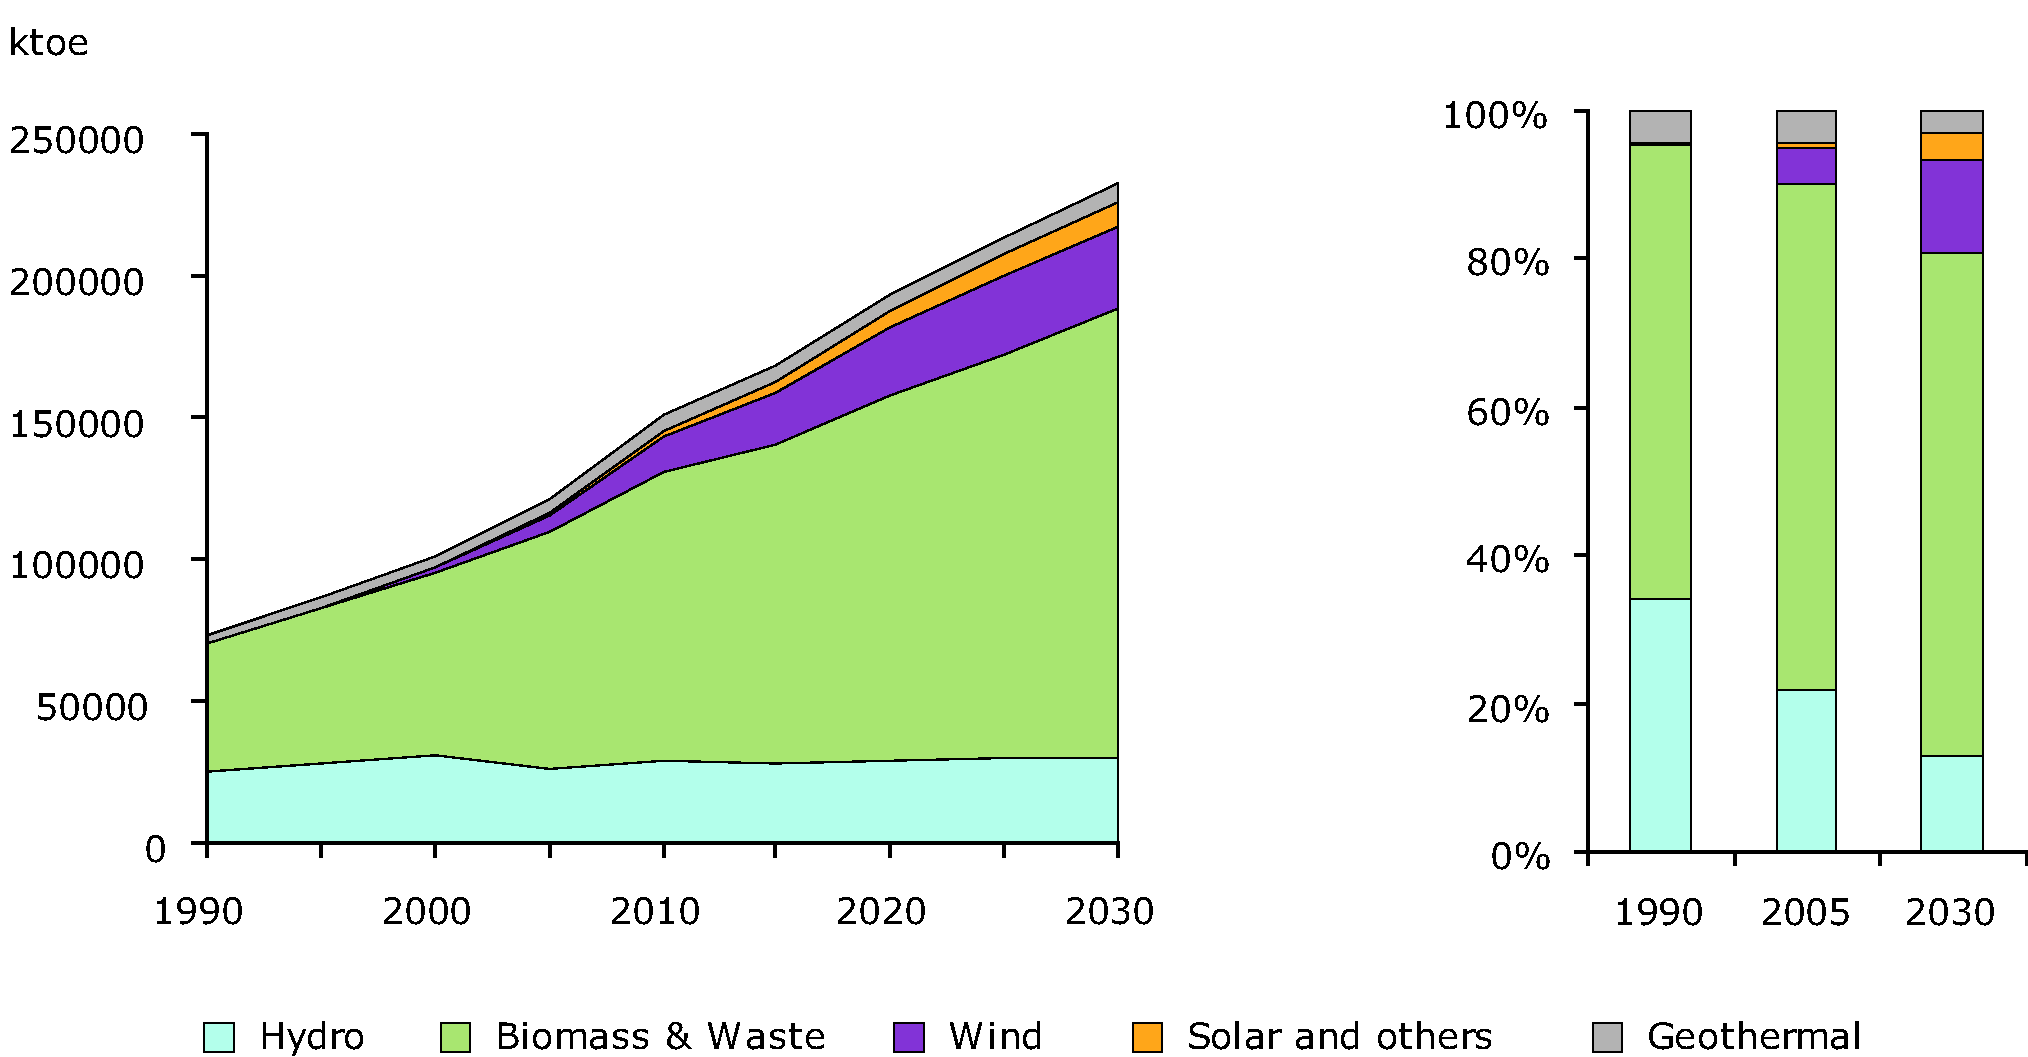 Renewable energy consumption in EU27 from 1990 to 2005 and projected REC till 2030